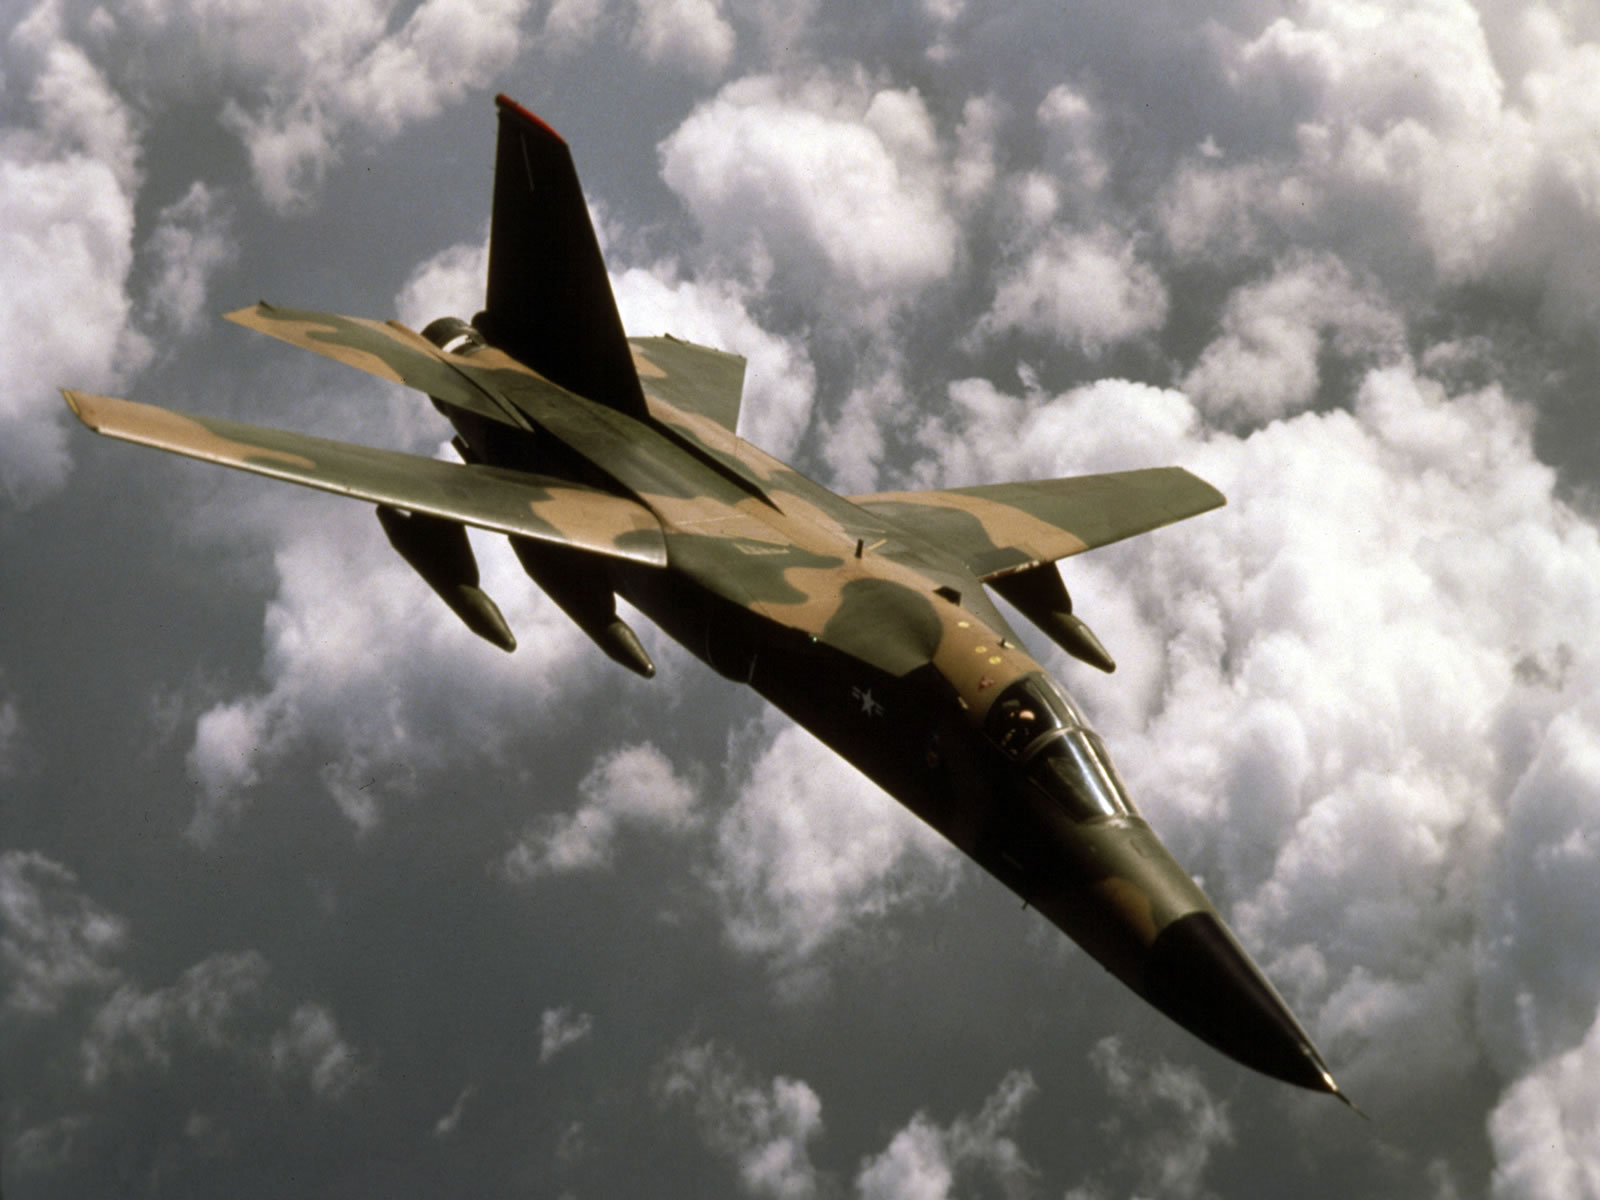 Belly landing of an Australian F-111